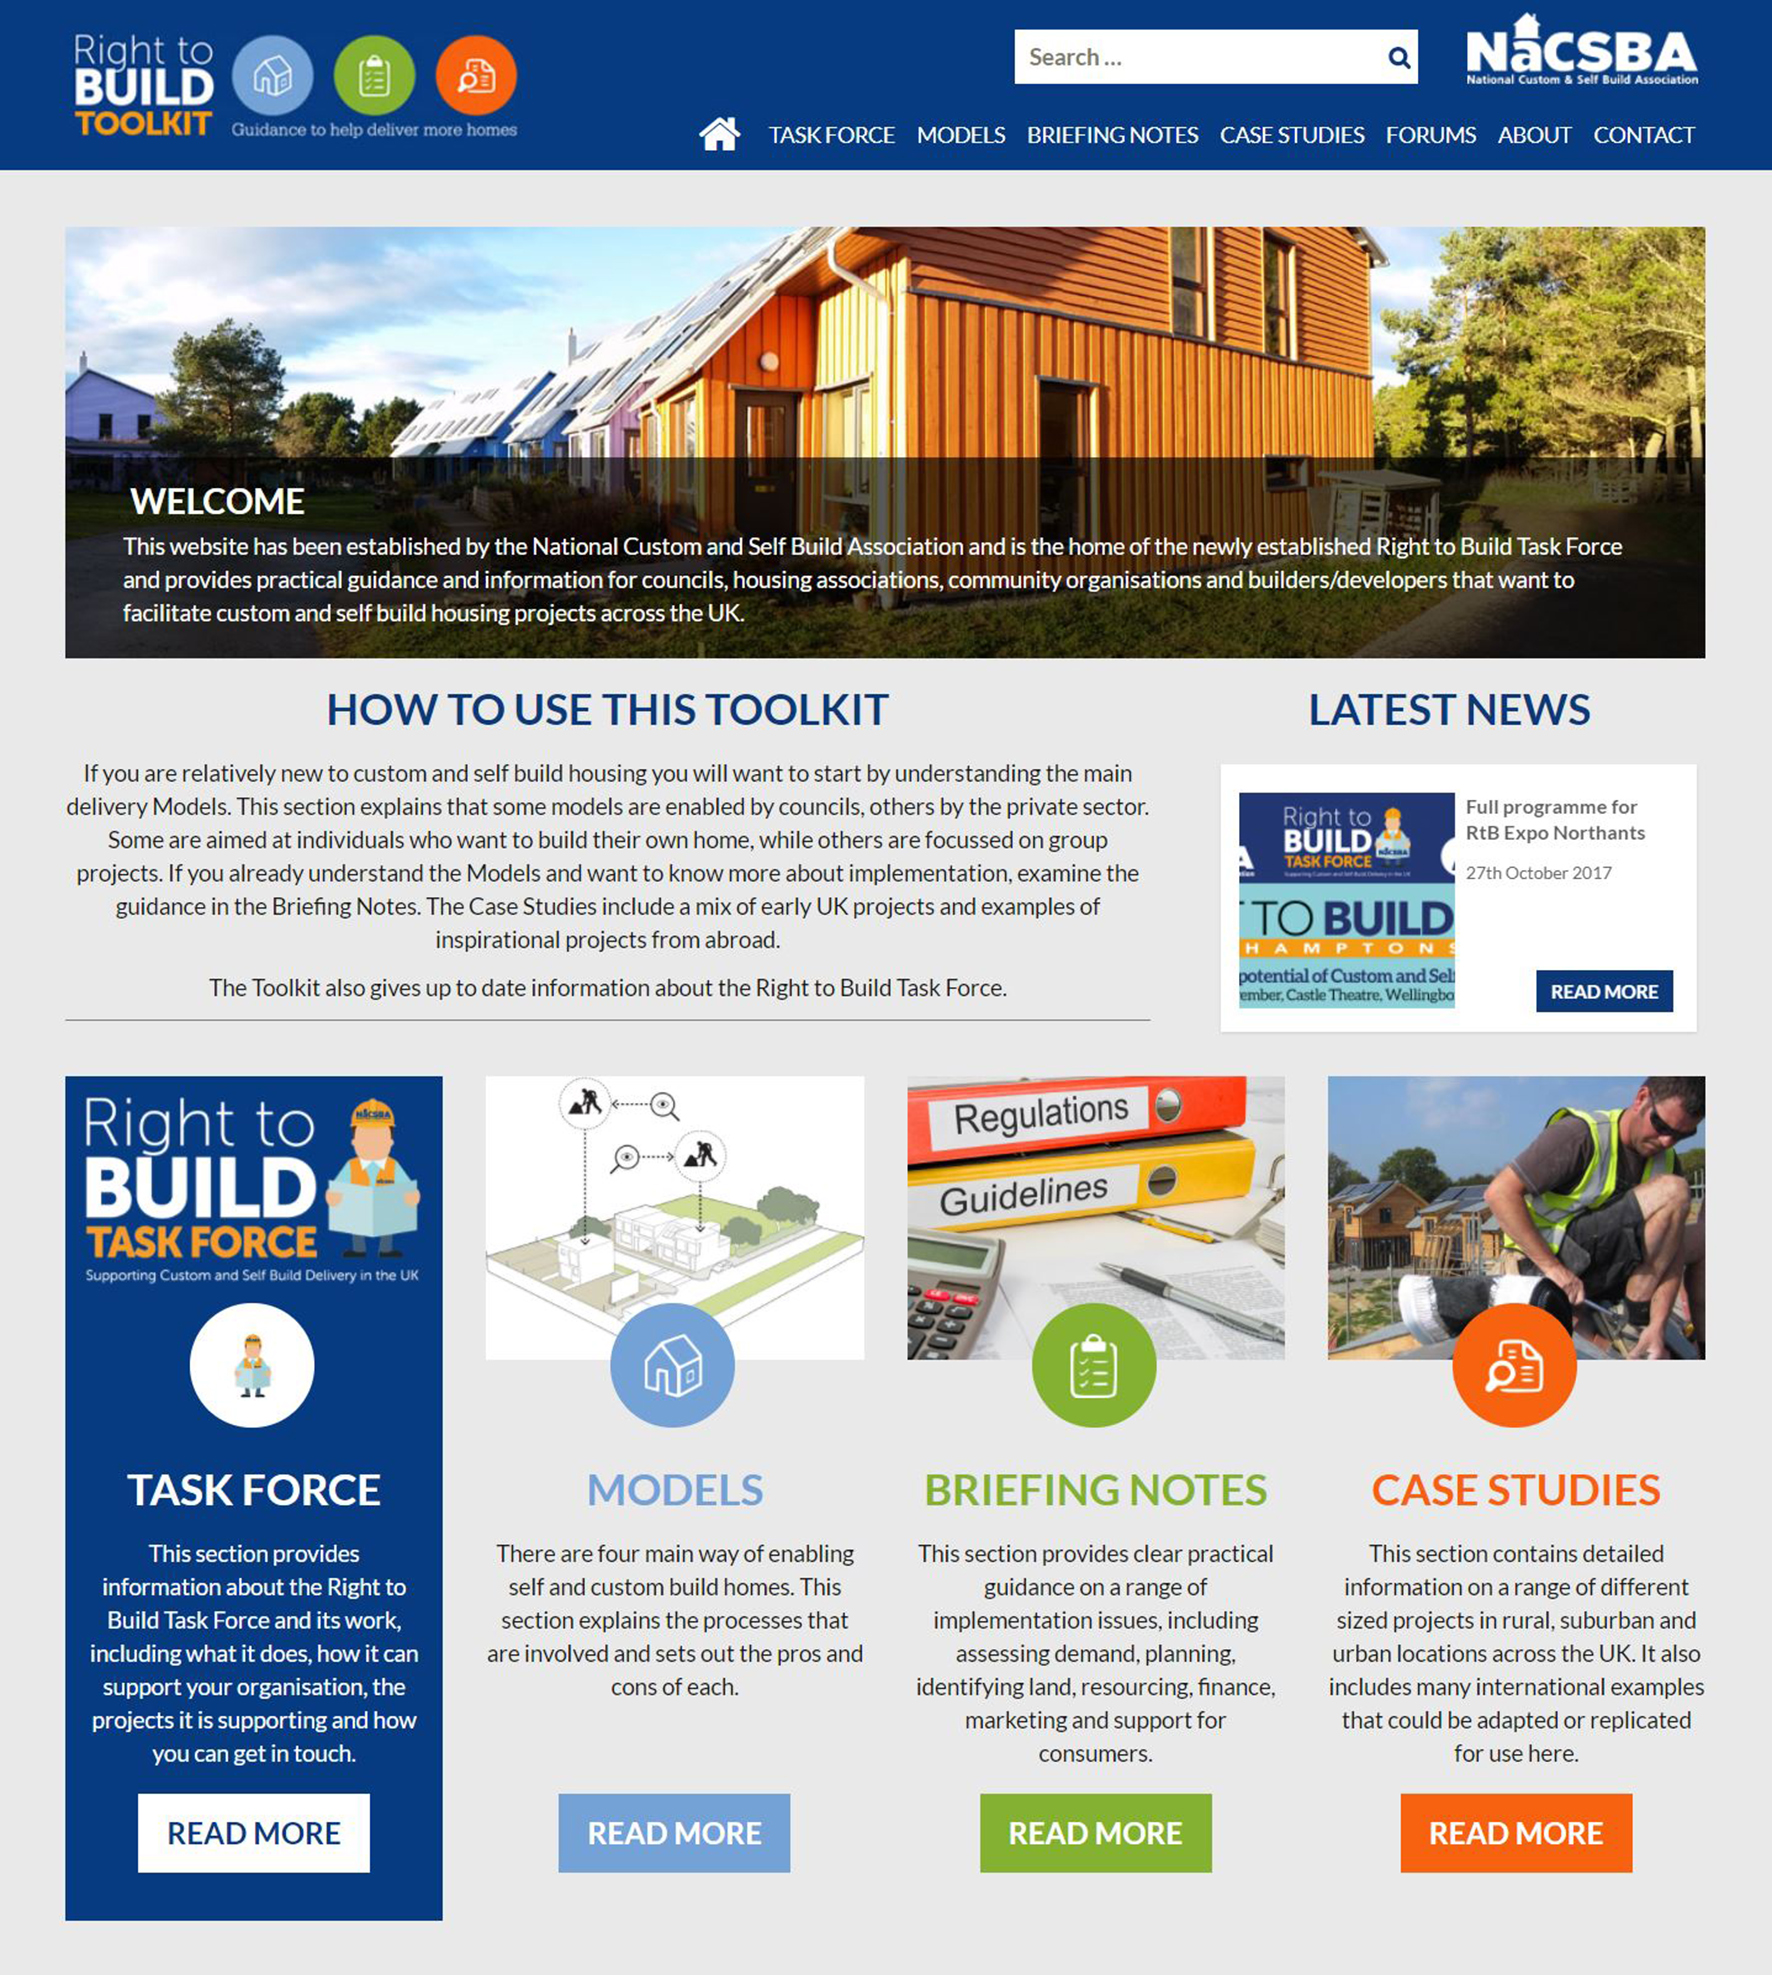 Right to Build Toolkit